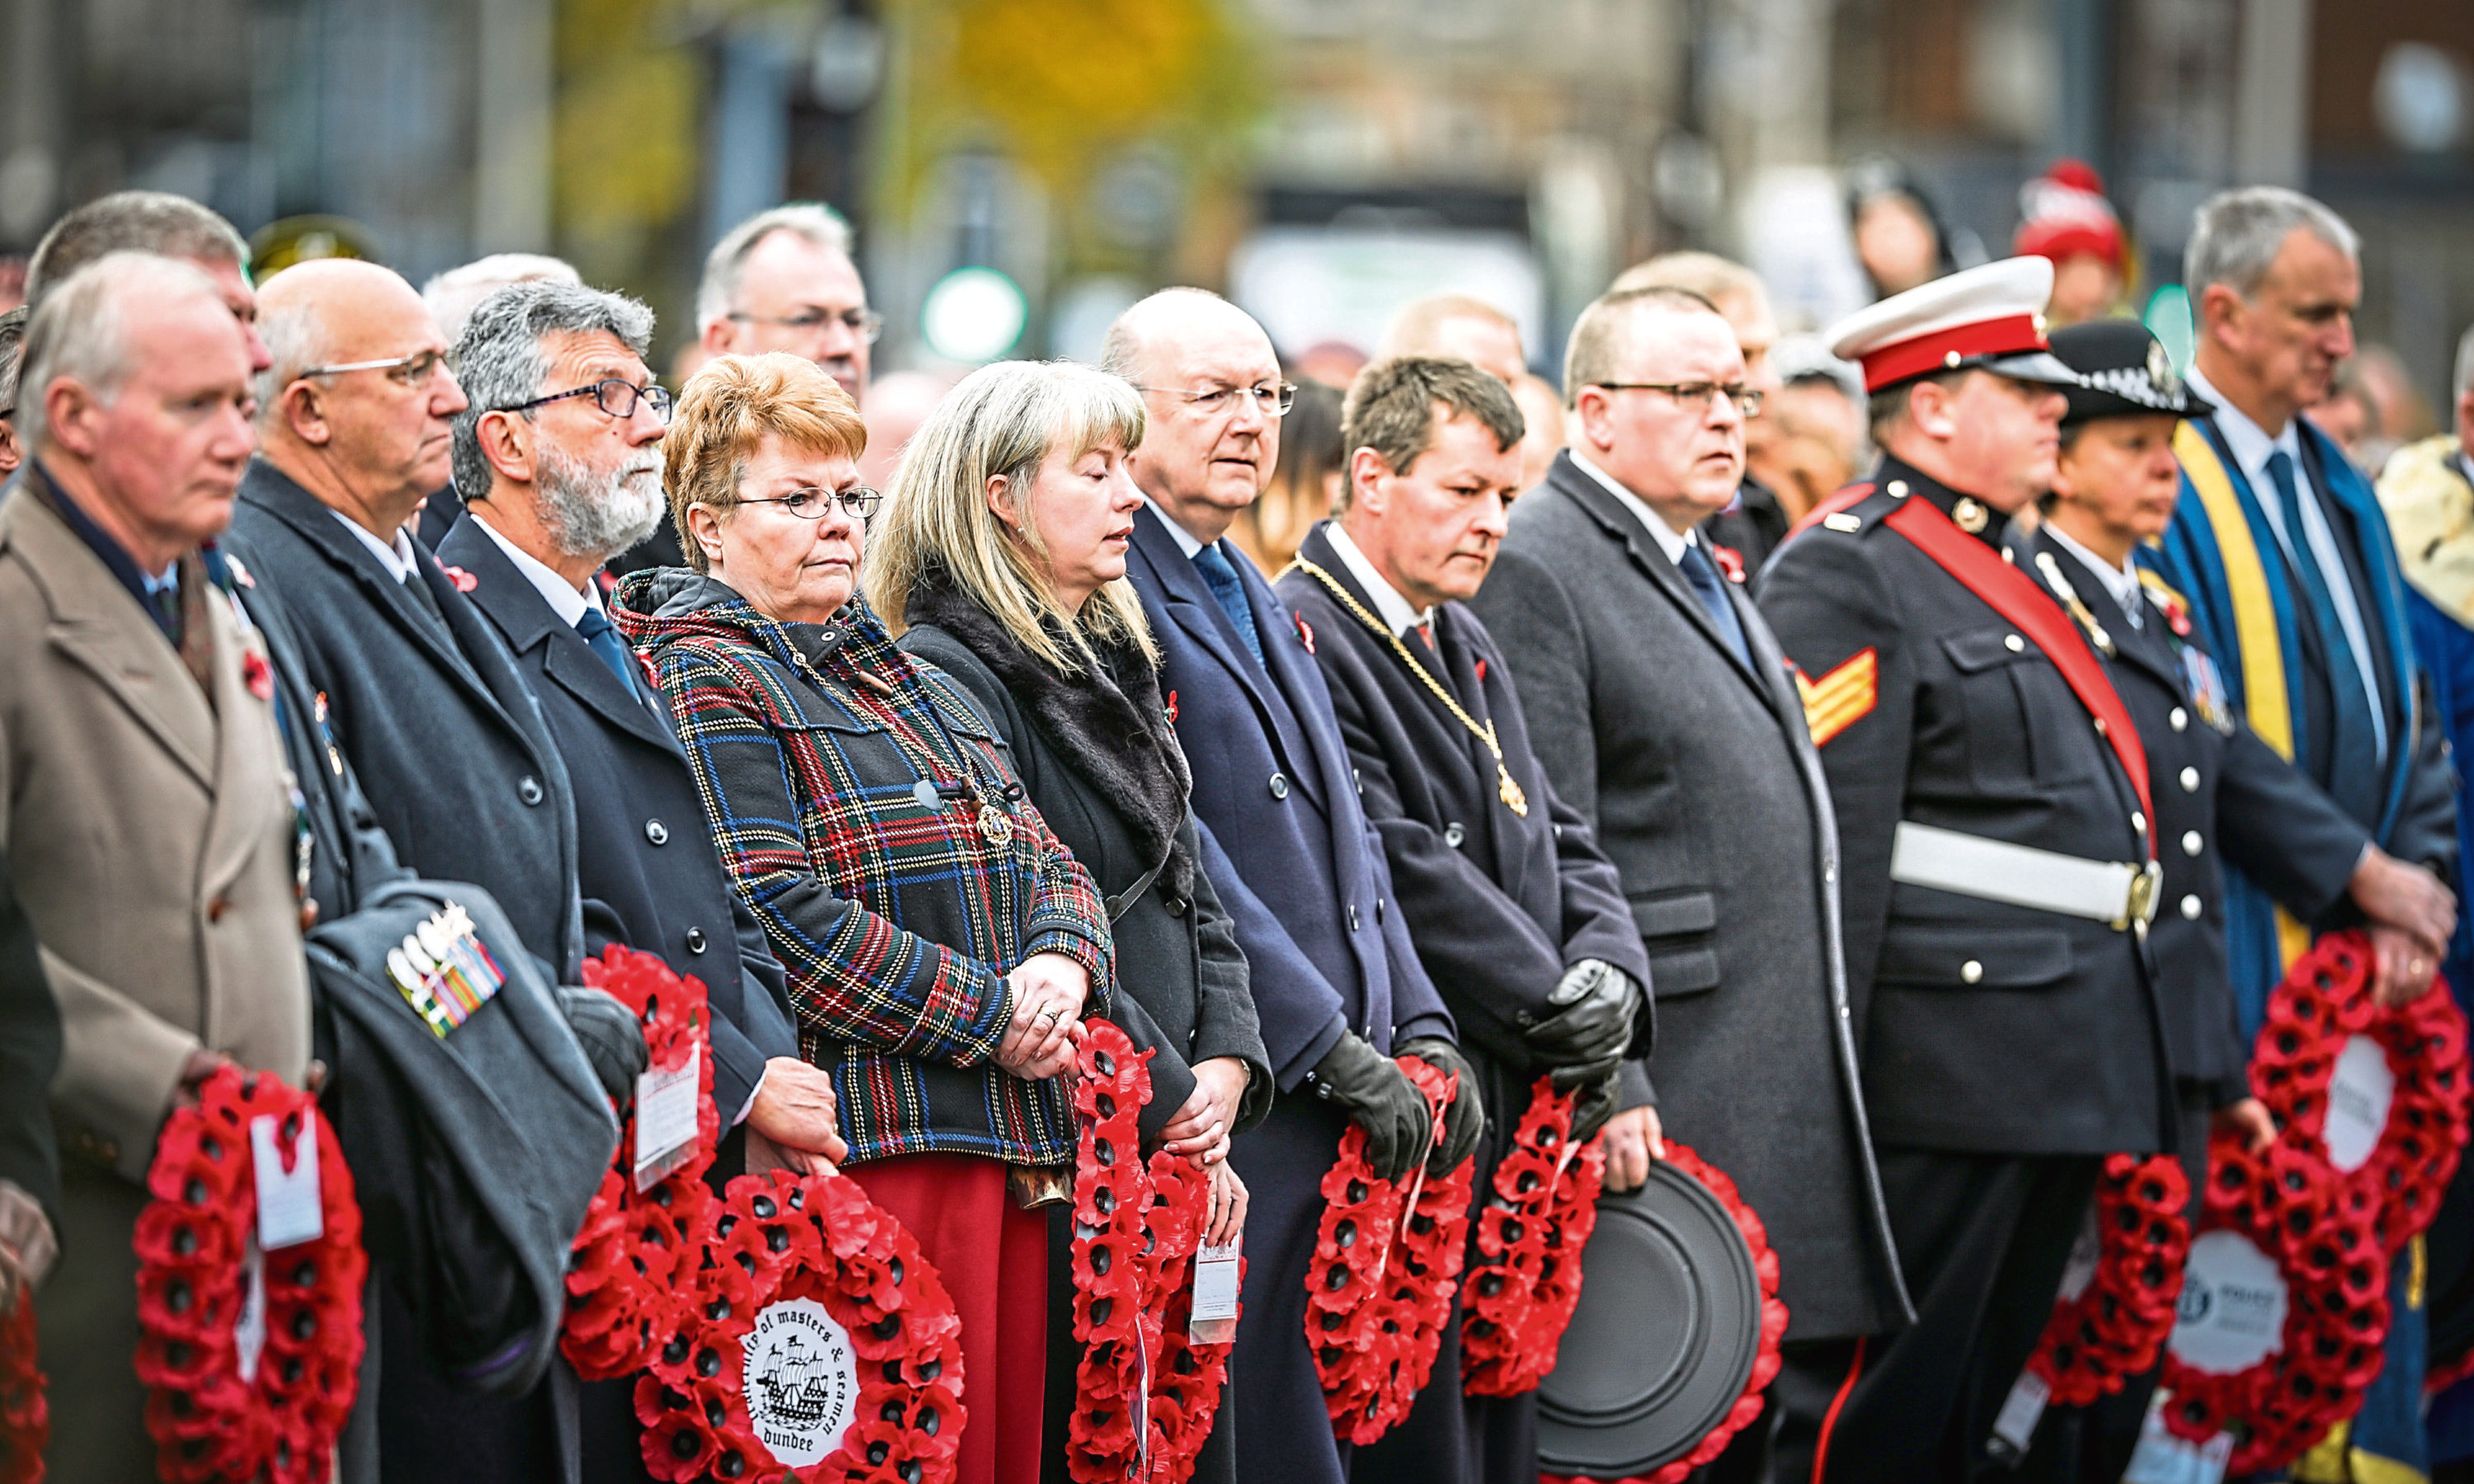 Local politicians laid wreathes at the memorial service in Dundee.